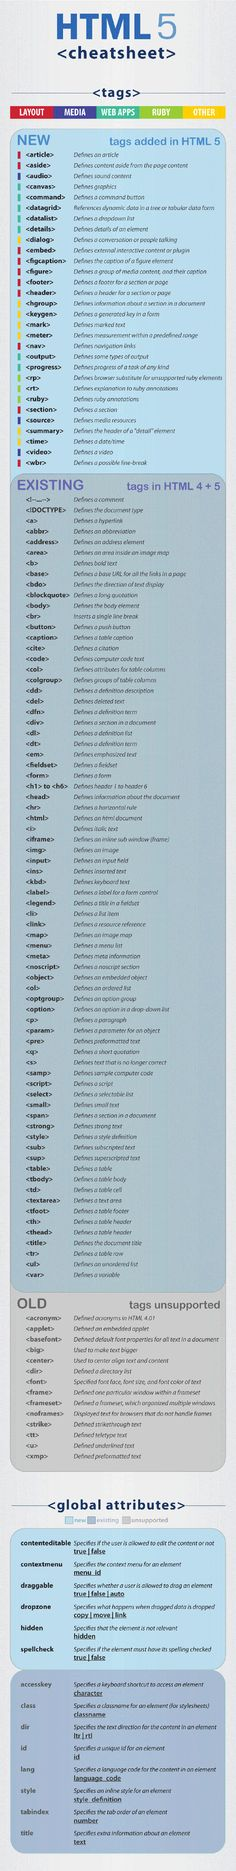 HTML cheatsheet. It's like a bible!!! This is totally going to come in handy at work--print please. @terrawaldroup #WebDesign